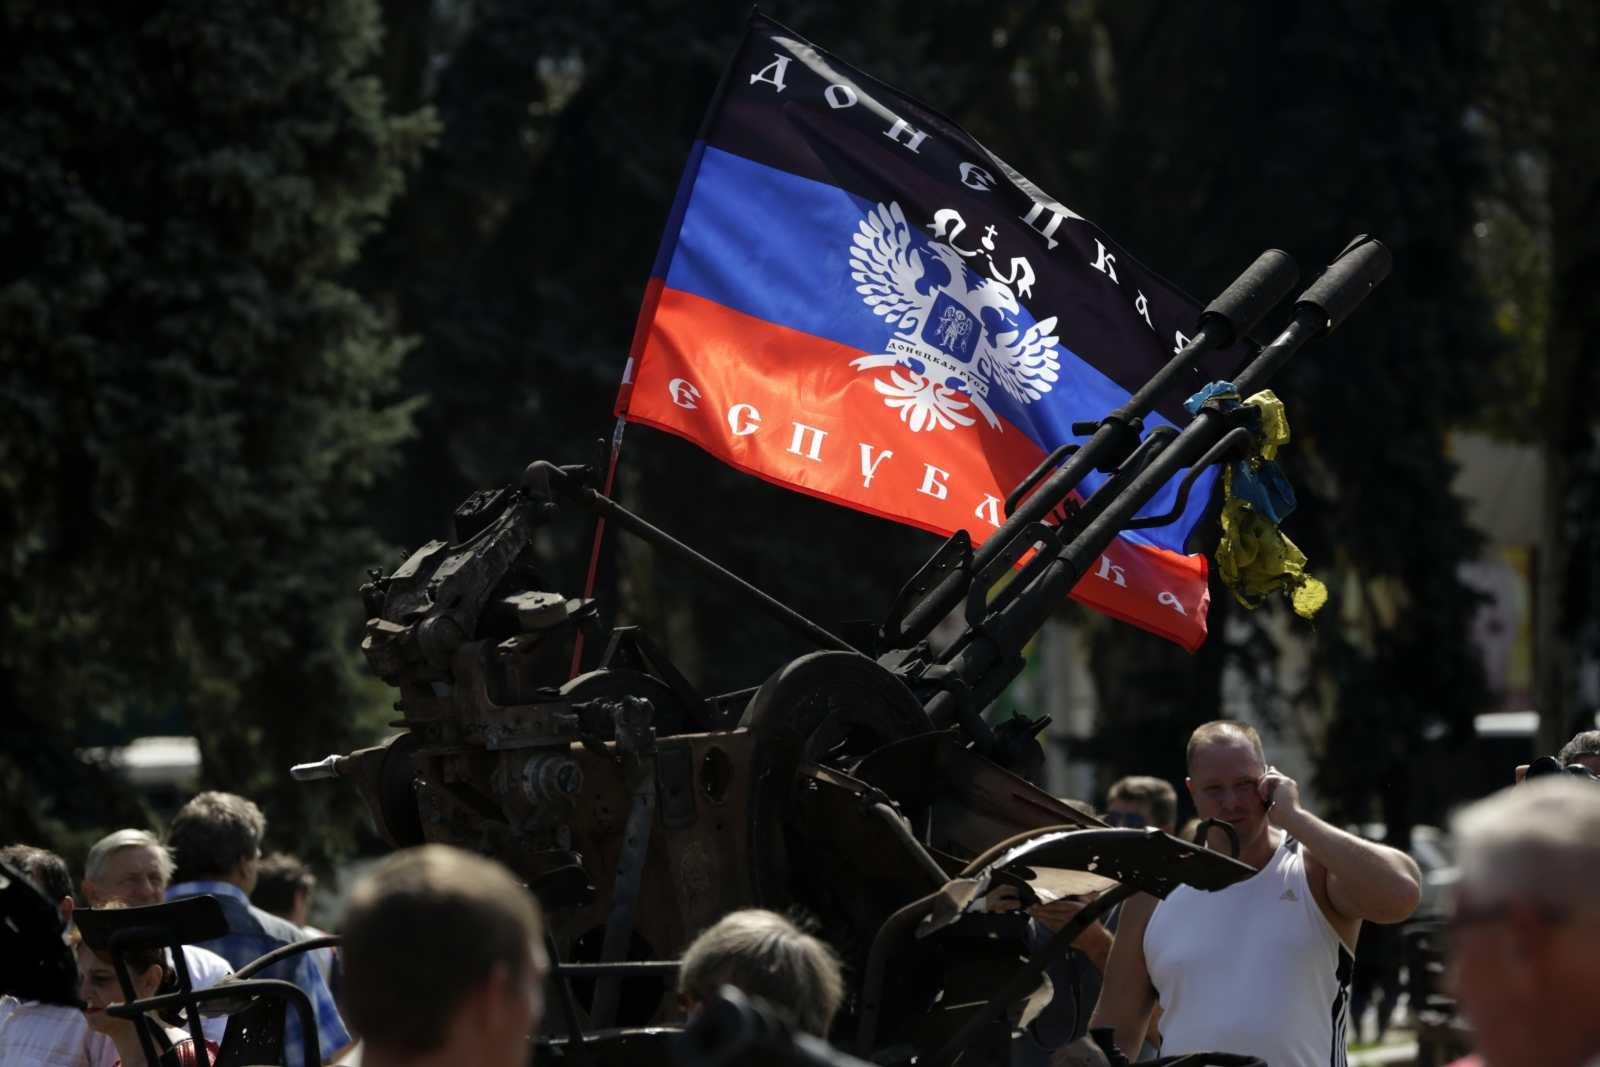 Pro-Russian separatists in east Ukraine